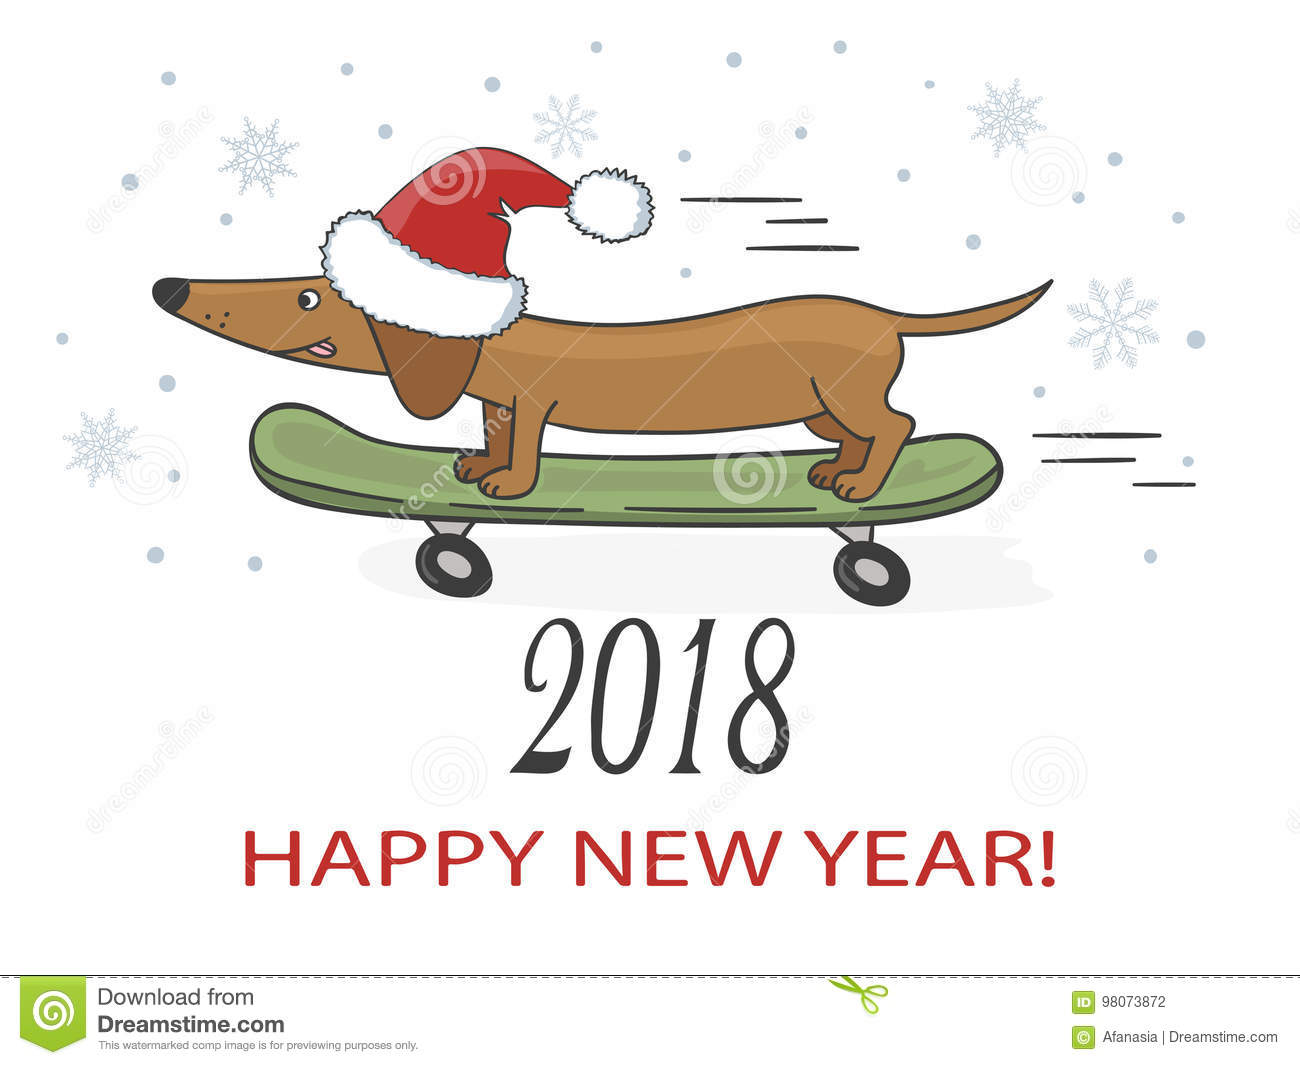 happy new year 2018 vector illustration with cute dachshund dog